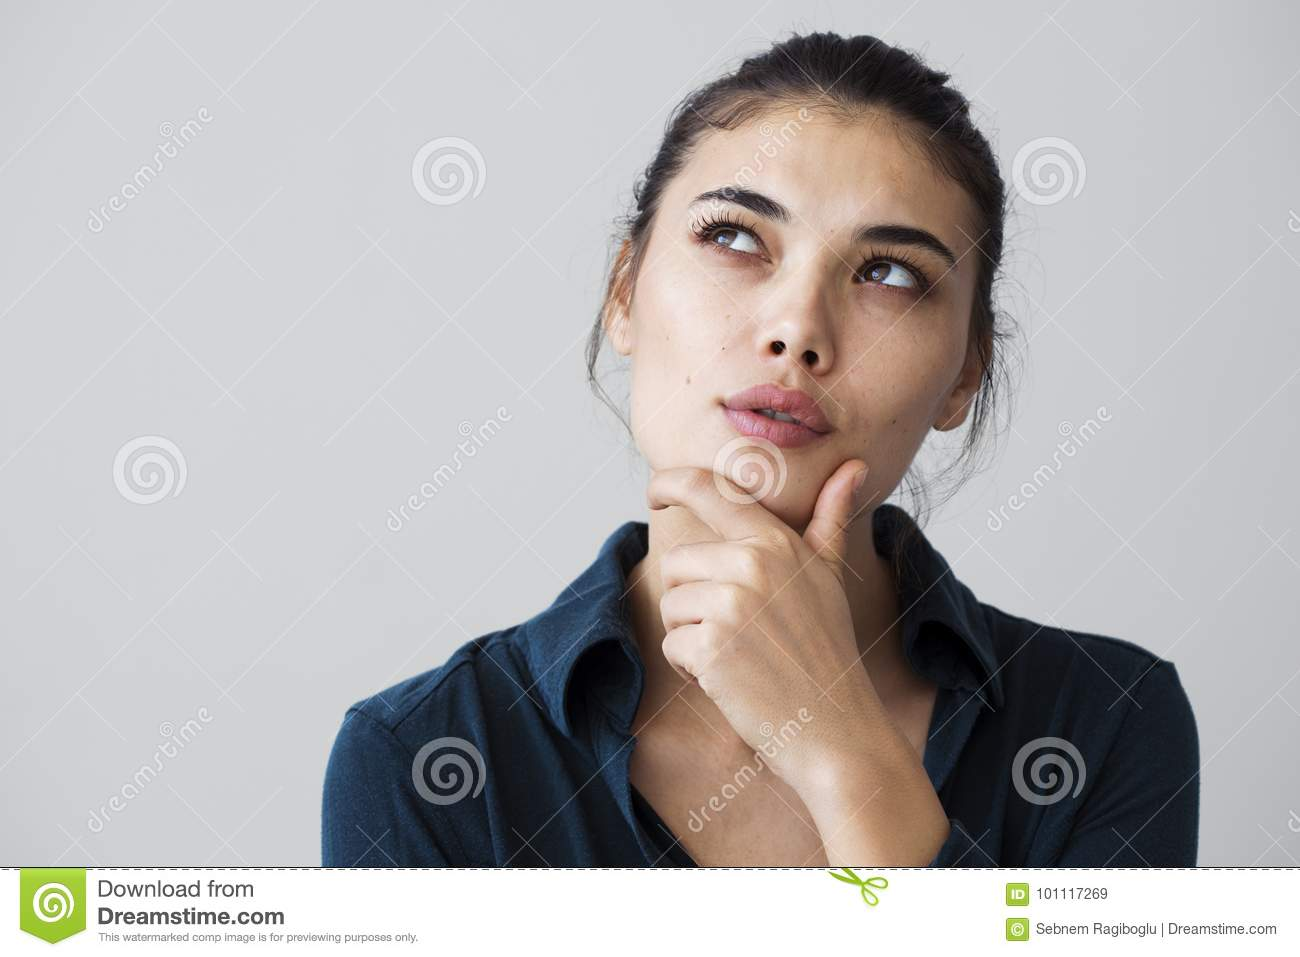 Young woman thinking on gray background